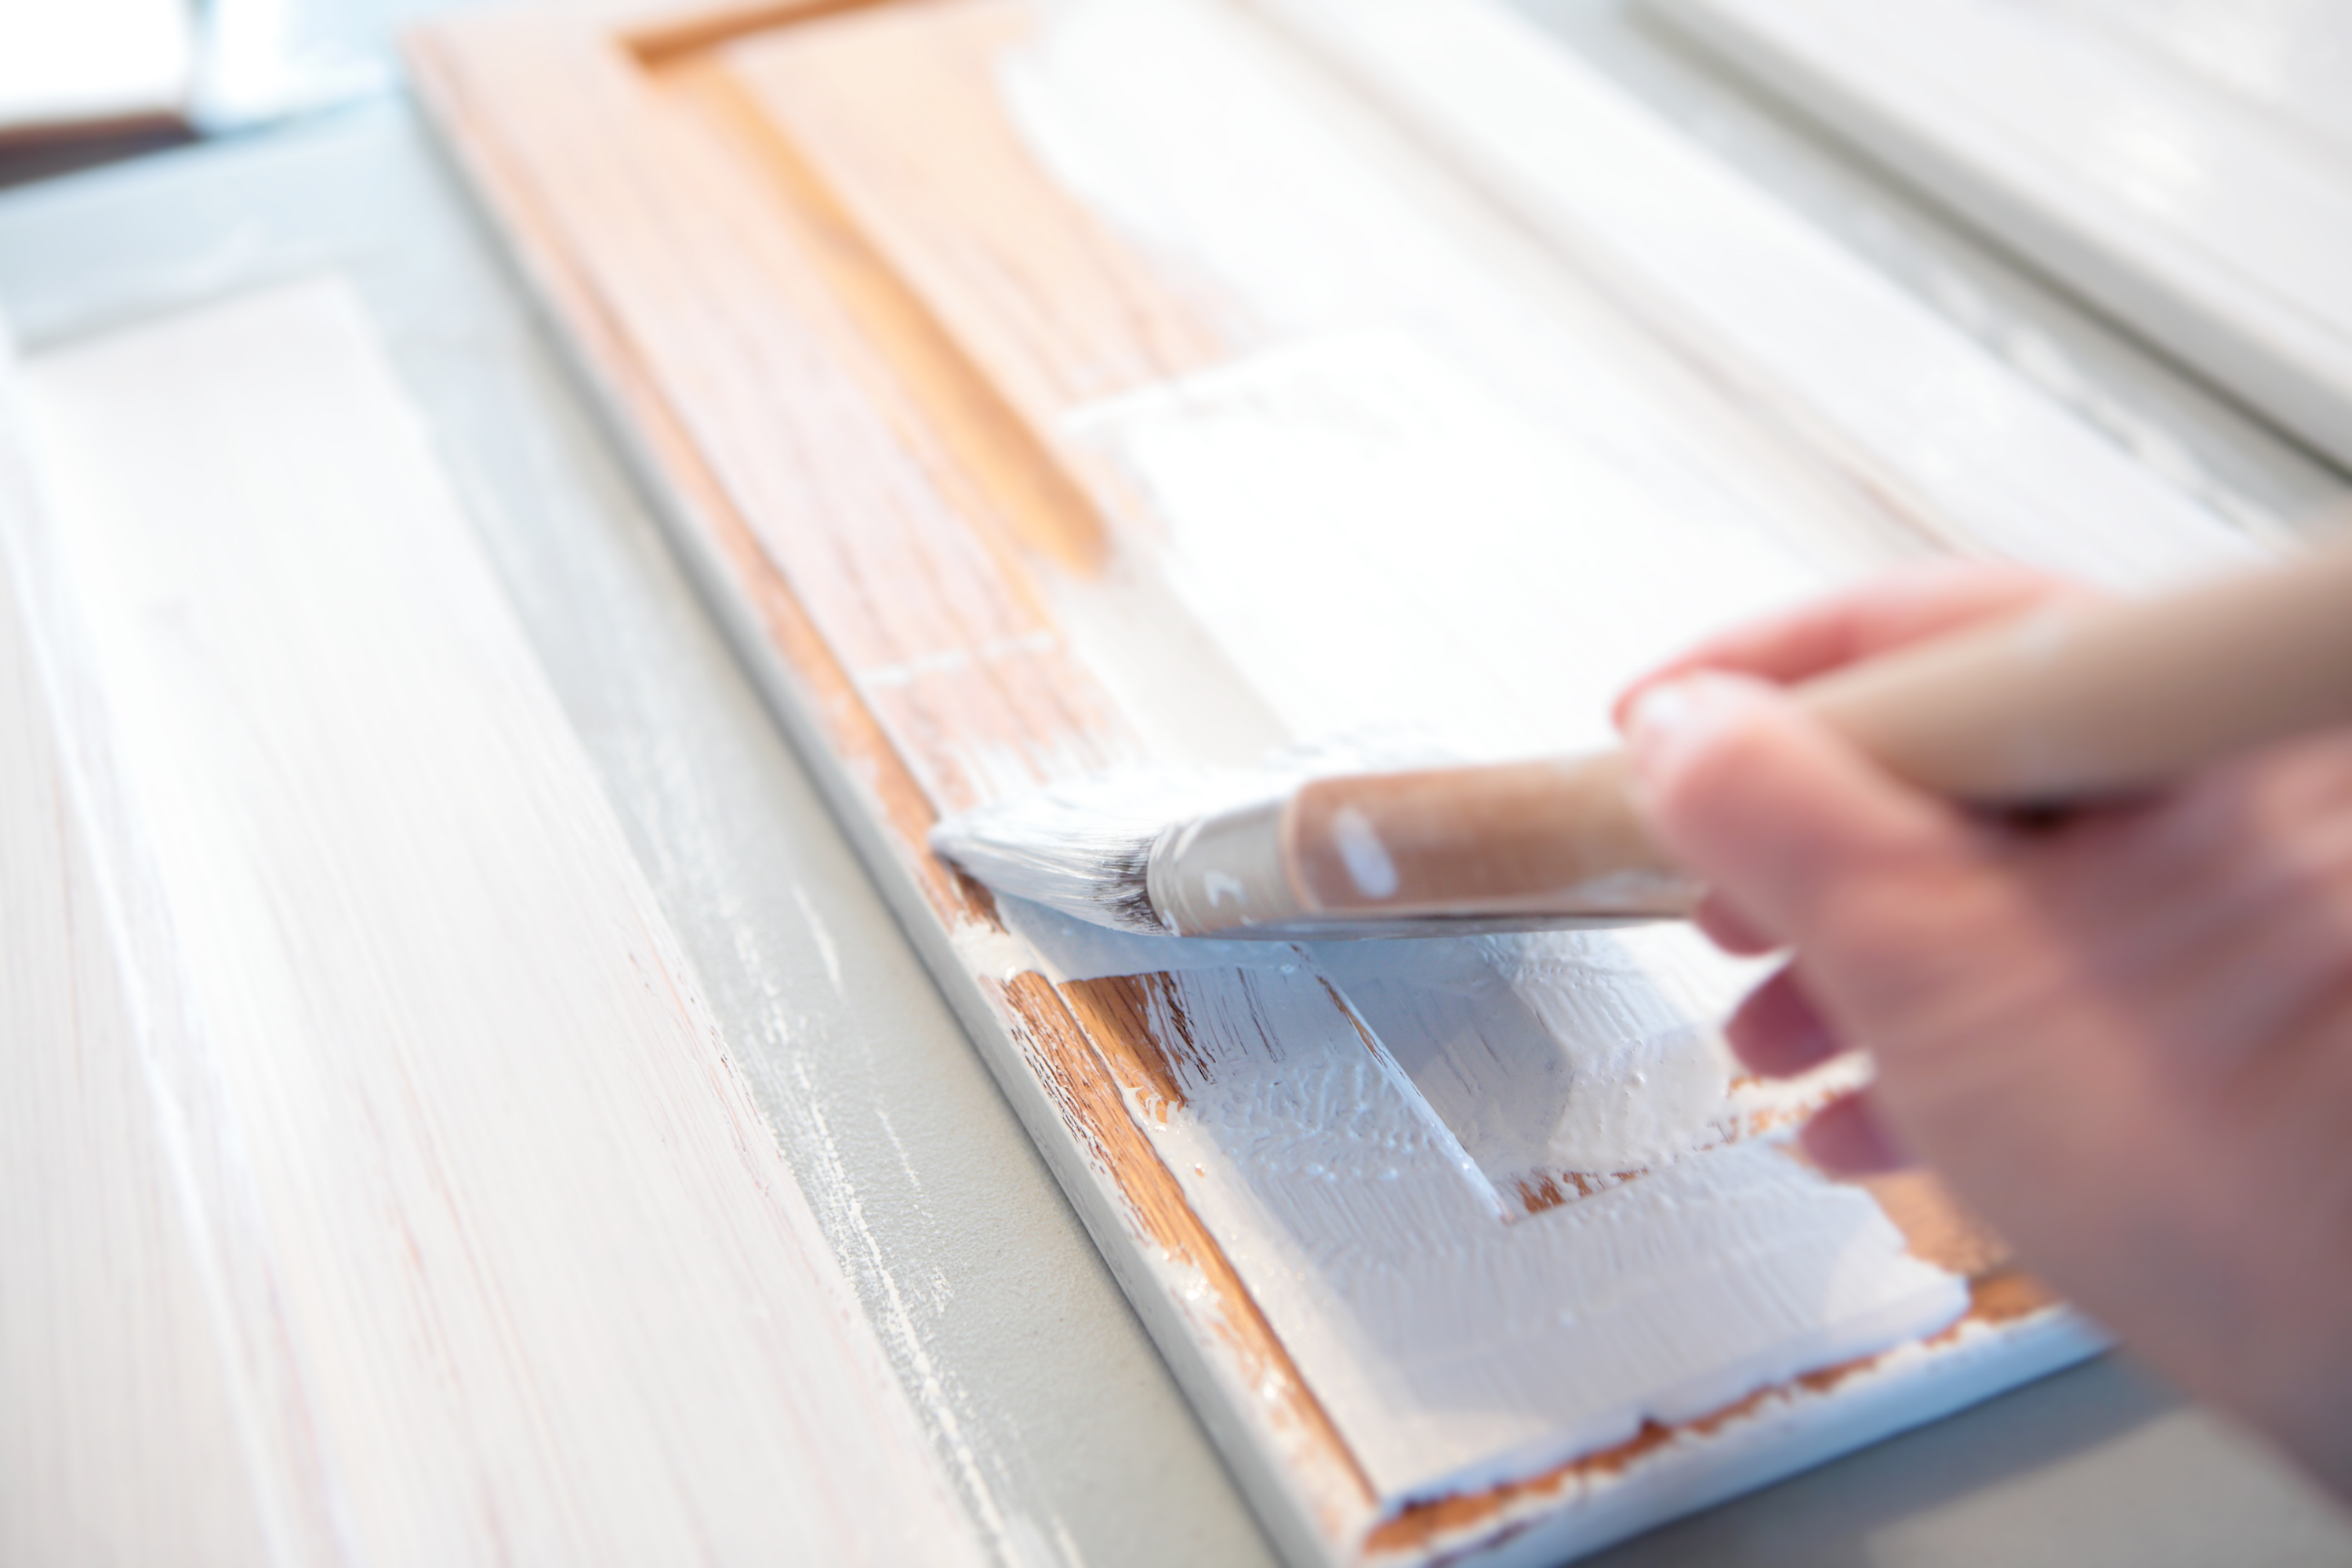 For An Affordable Kitchen Update Try Painting Your Cabinets Here S How The Washington Post